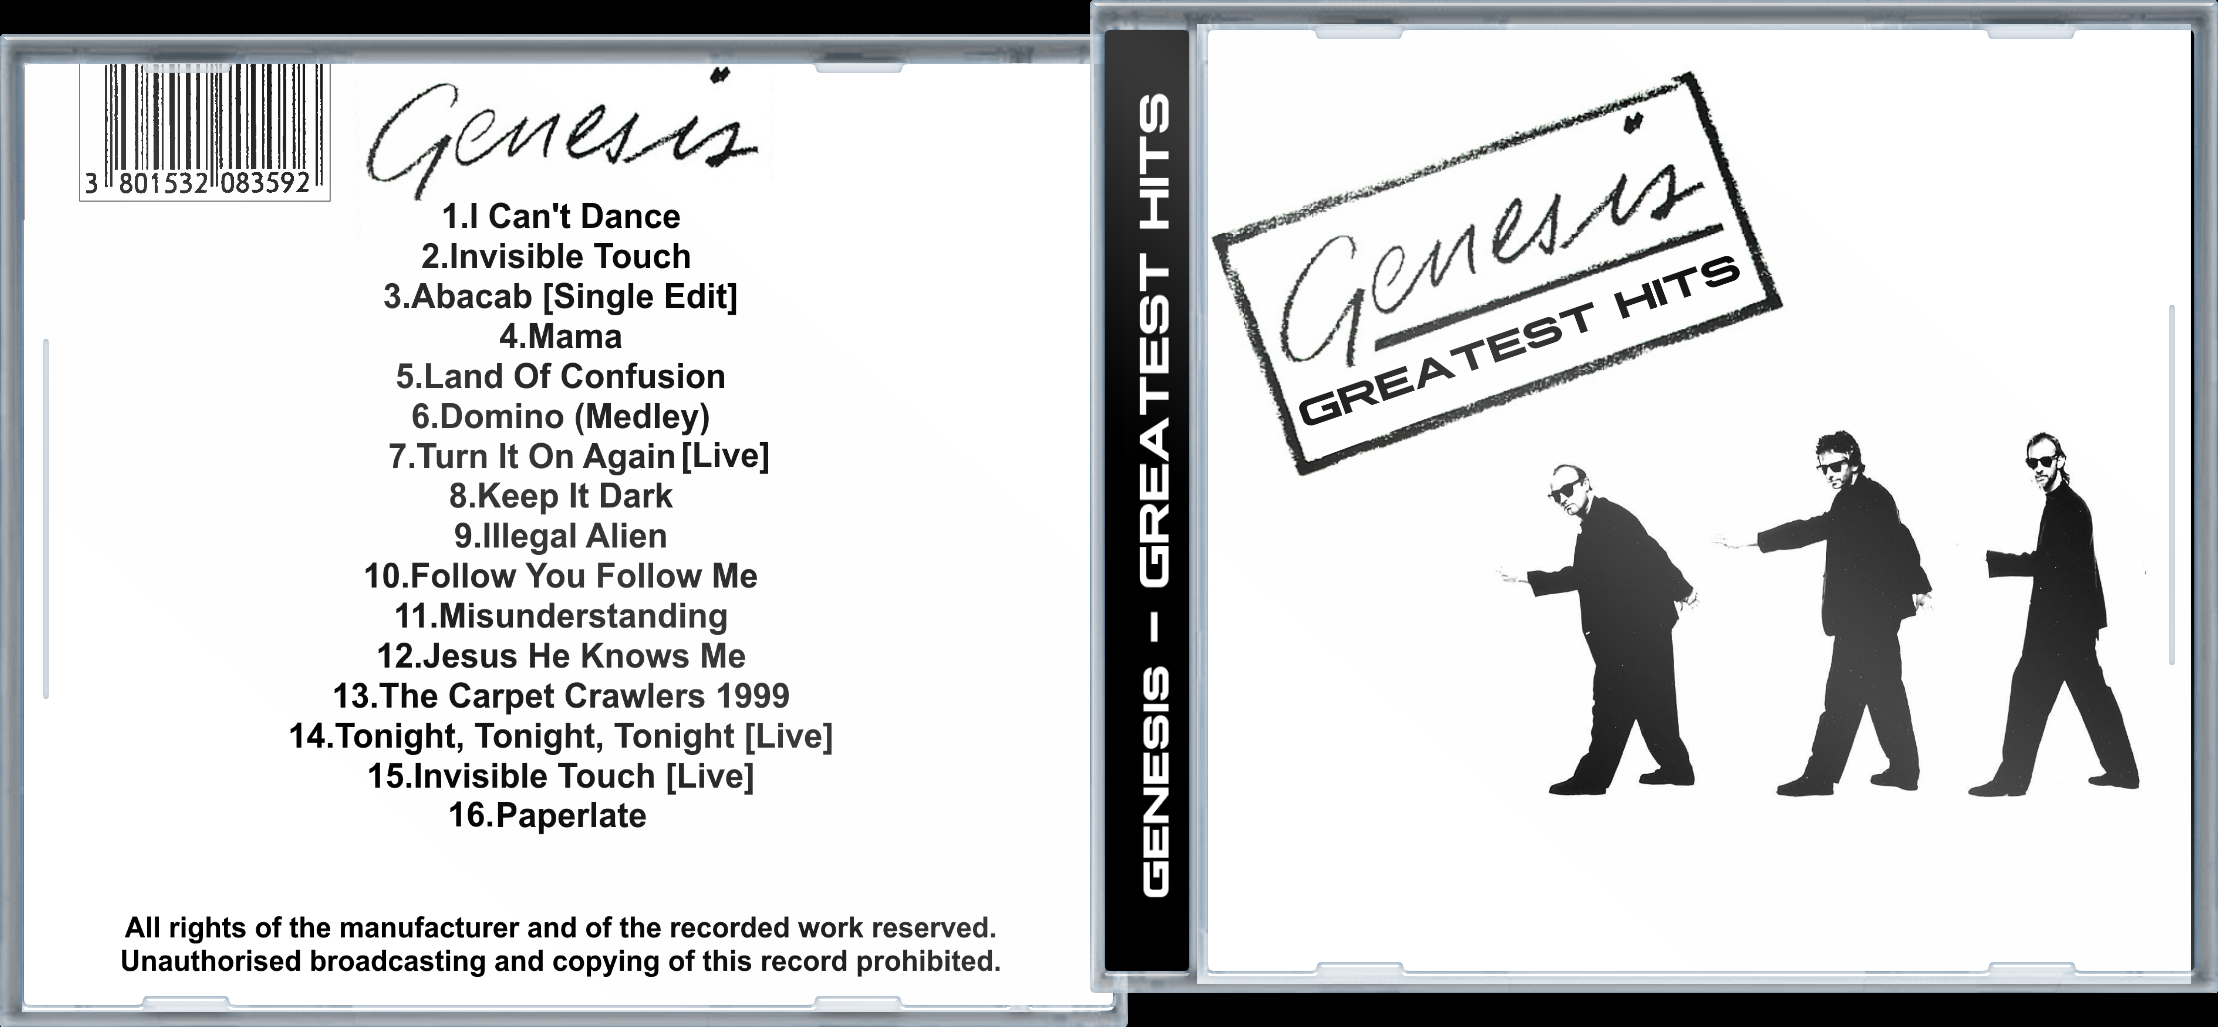 Genesis - Greatest Hits box cover